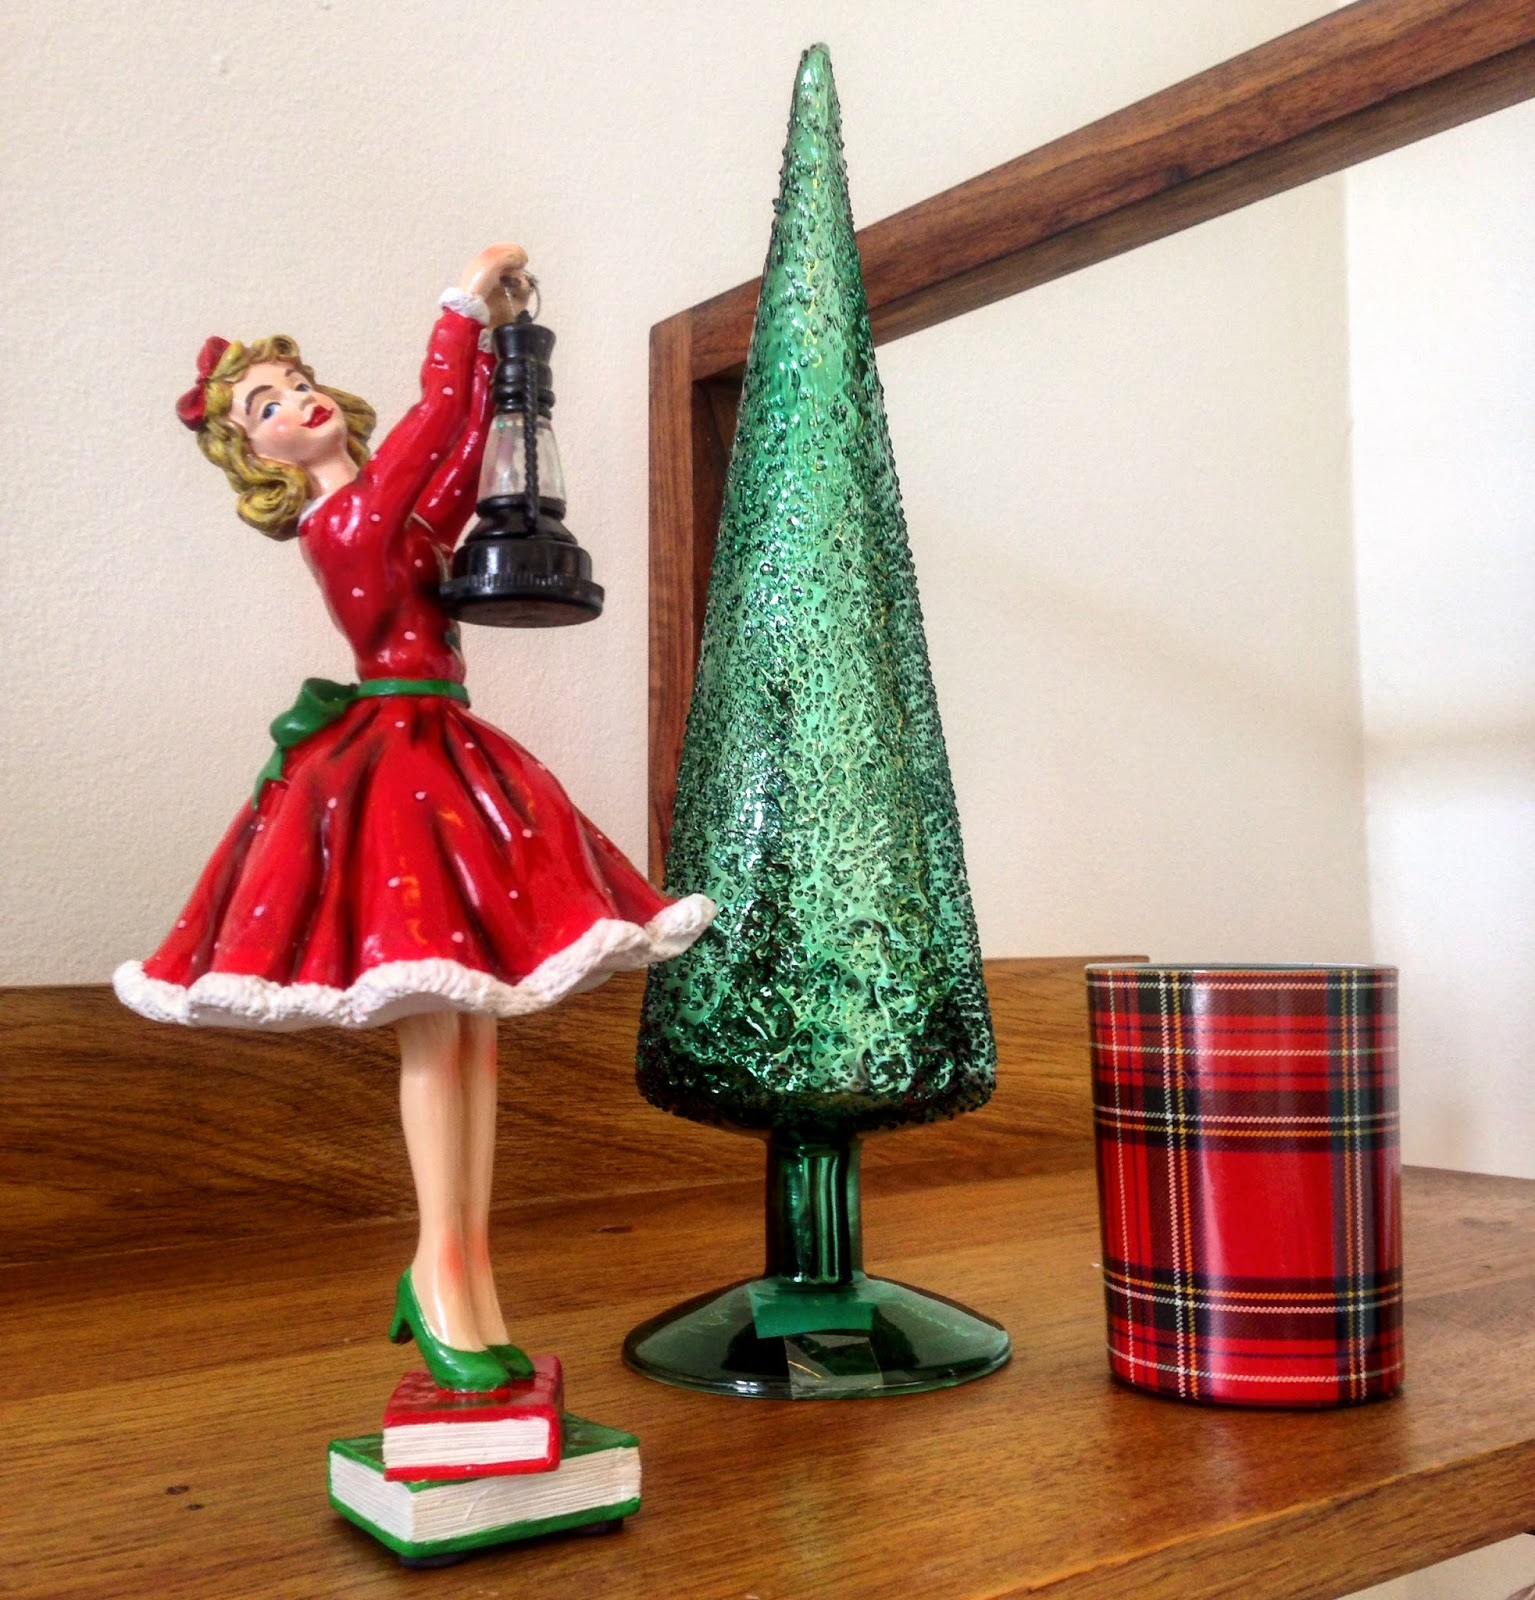 Asda Christmas Trees: It's The Most Wonderful Time Of The Year